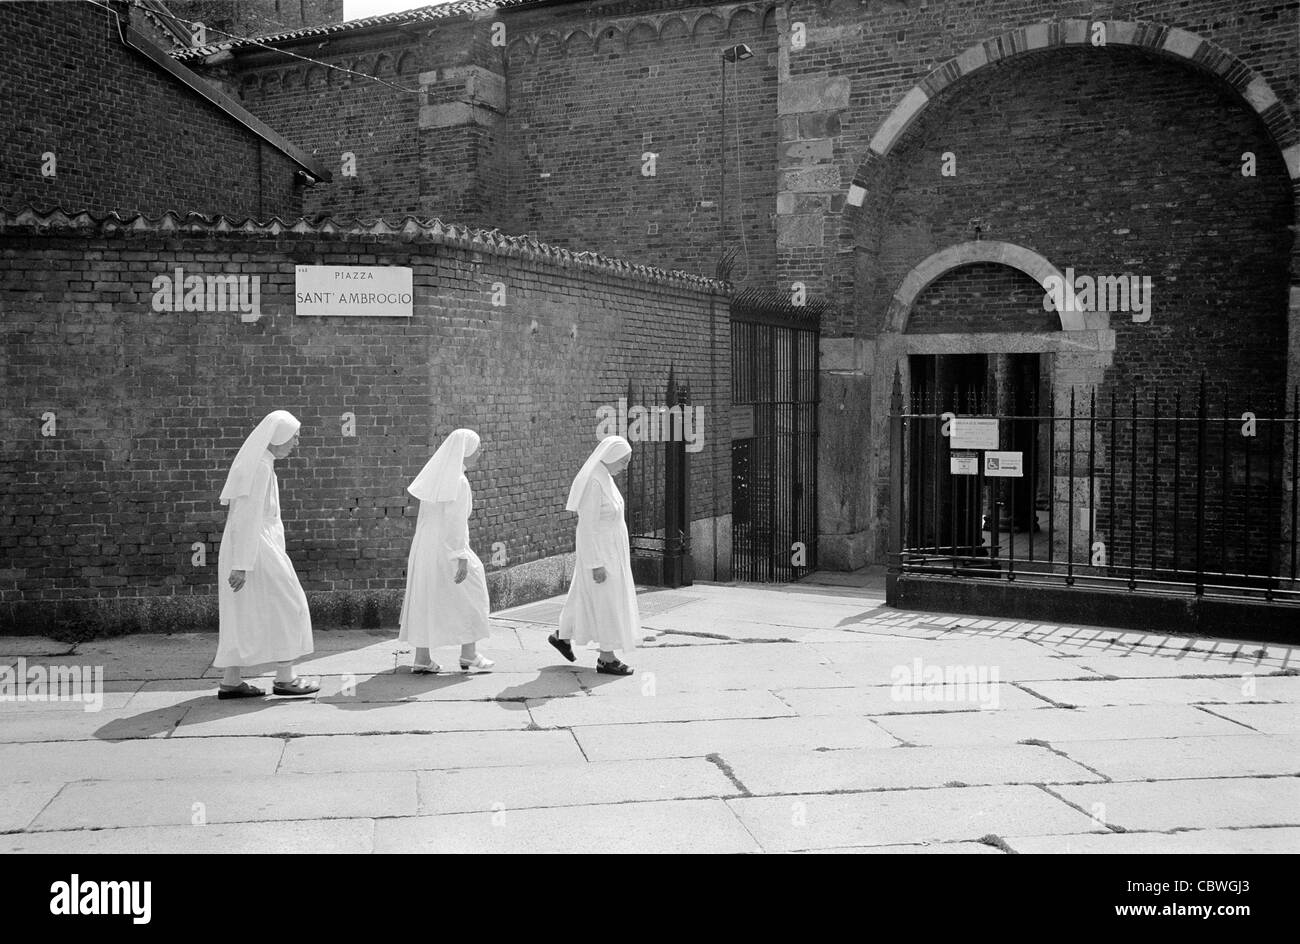 Three nuns approaching sant'Ambrogio, Milano - Stock Image